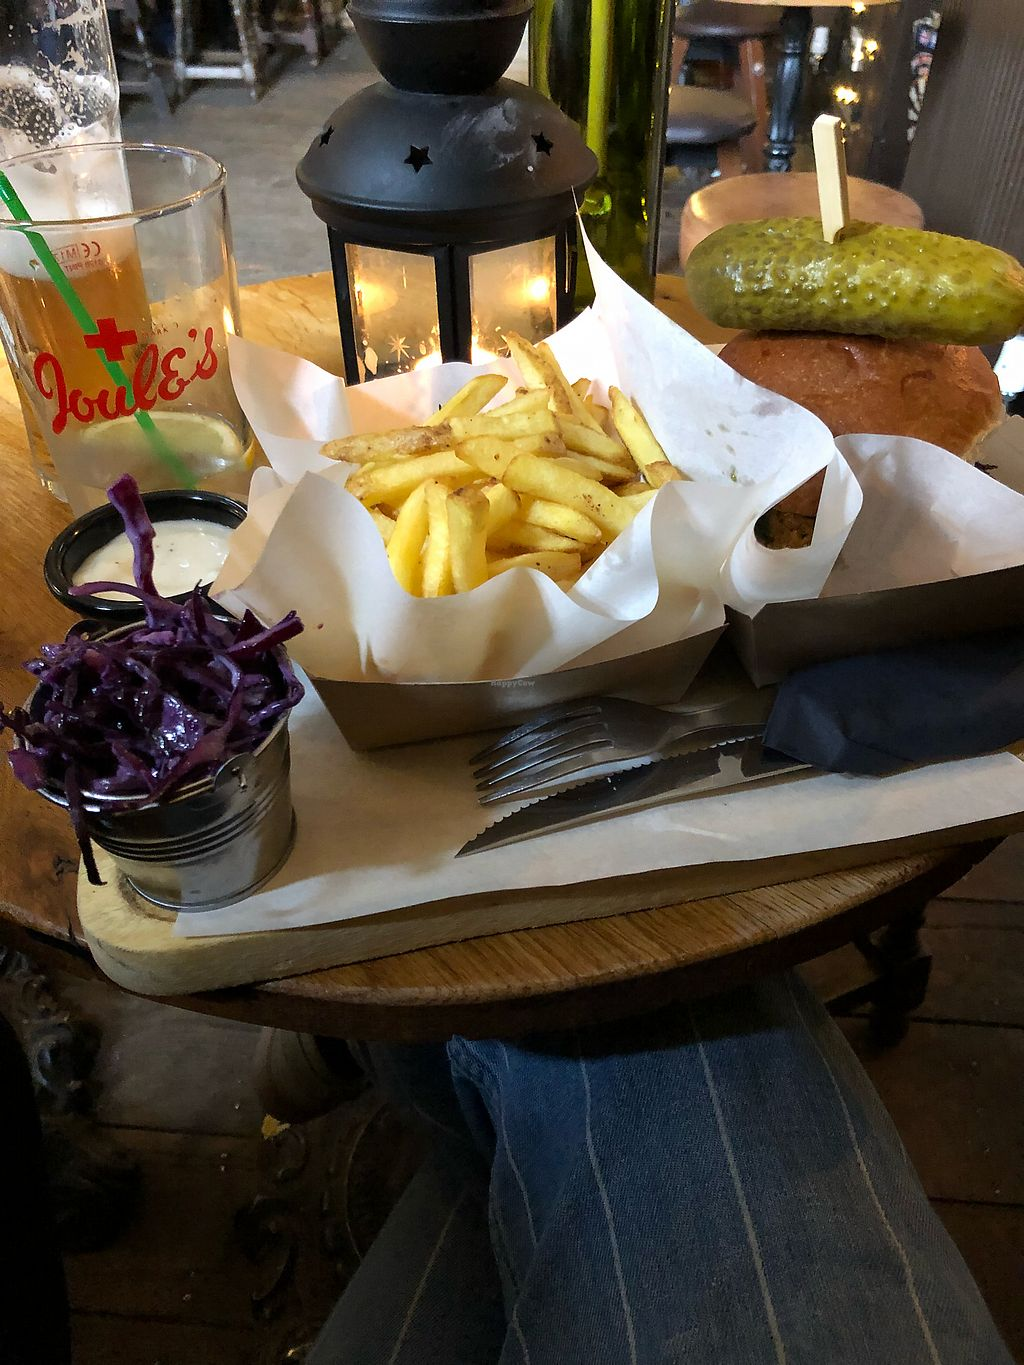 "Photo of The Dolphin Inn  by <a href=""/members/profile/megmate"">megmate</a> <br/>Vegan sausage patty with pesto, sundried tomato, beetroot crisps, with chips and slaw  <br/> April 8, 2018  - <a href='/contact/abuse/image/114183/382551'>Report</a>"